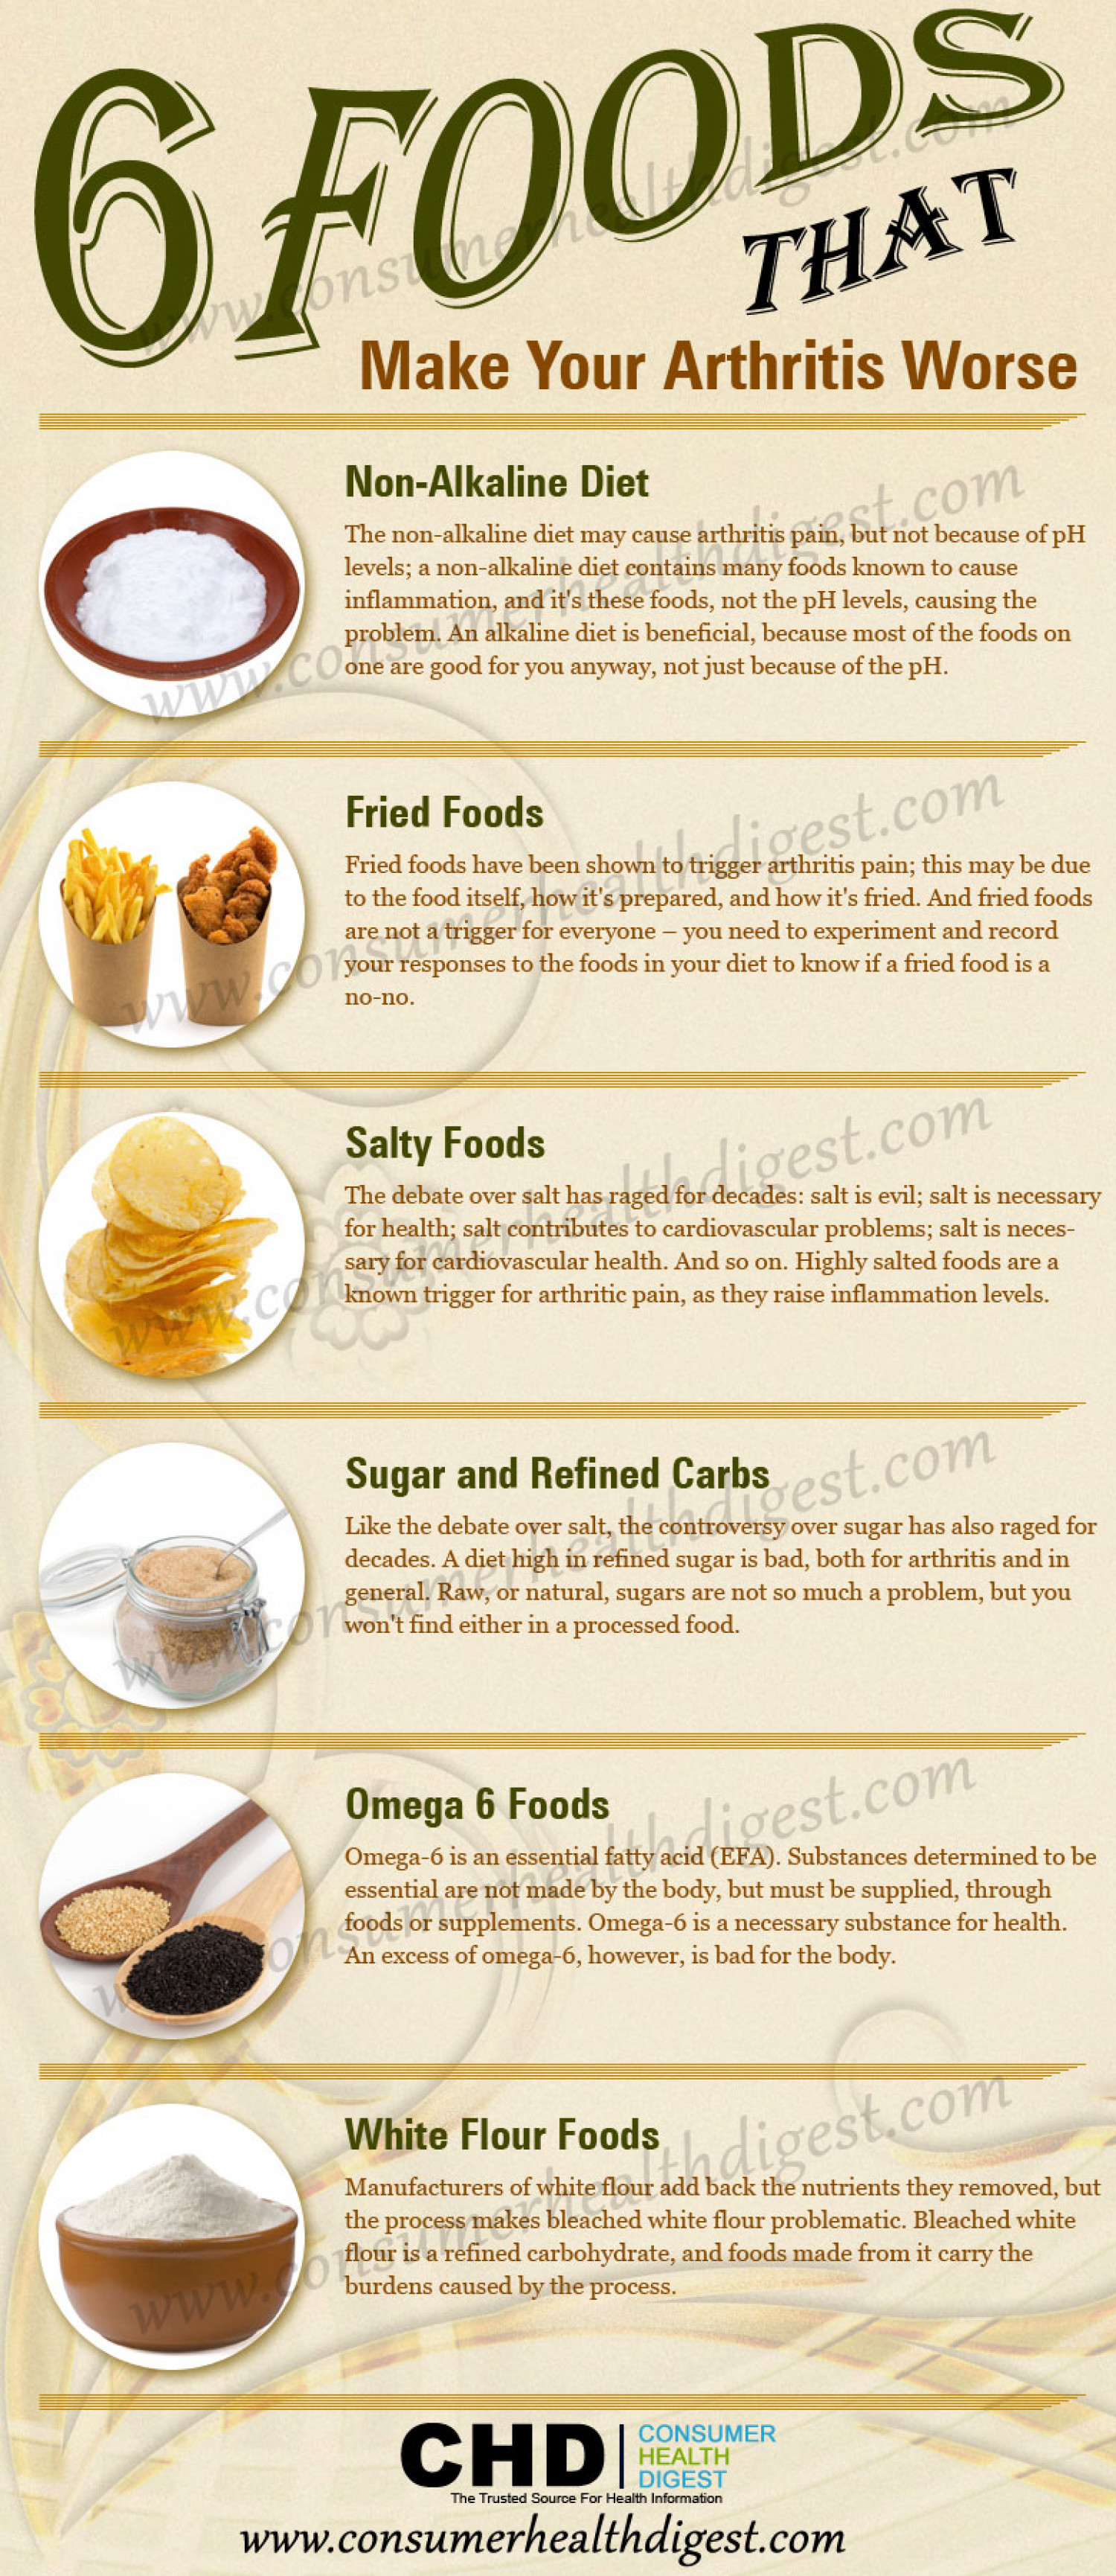 Foods Not To Eat If You Have Arthritis